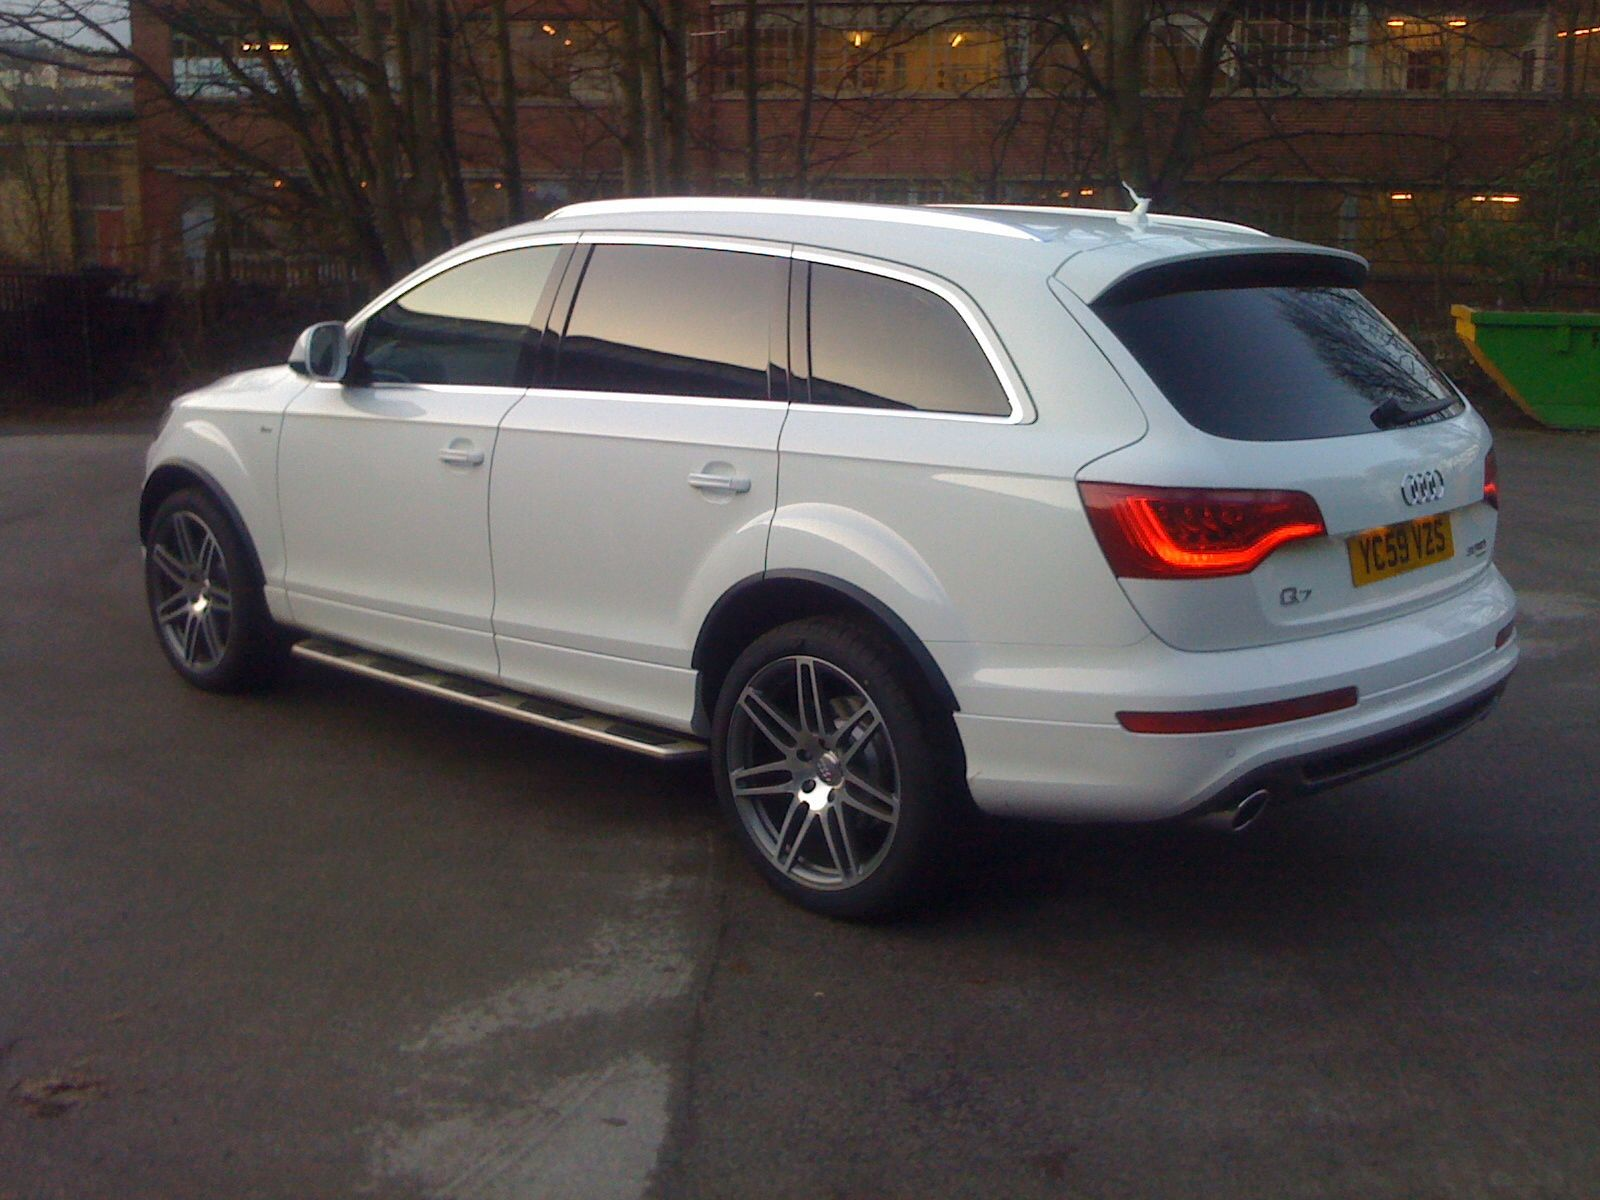 audi q7 4x4 window tints in limo shade at the rear. Black Bedroom Furniture Sets. Home Design Ideas